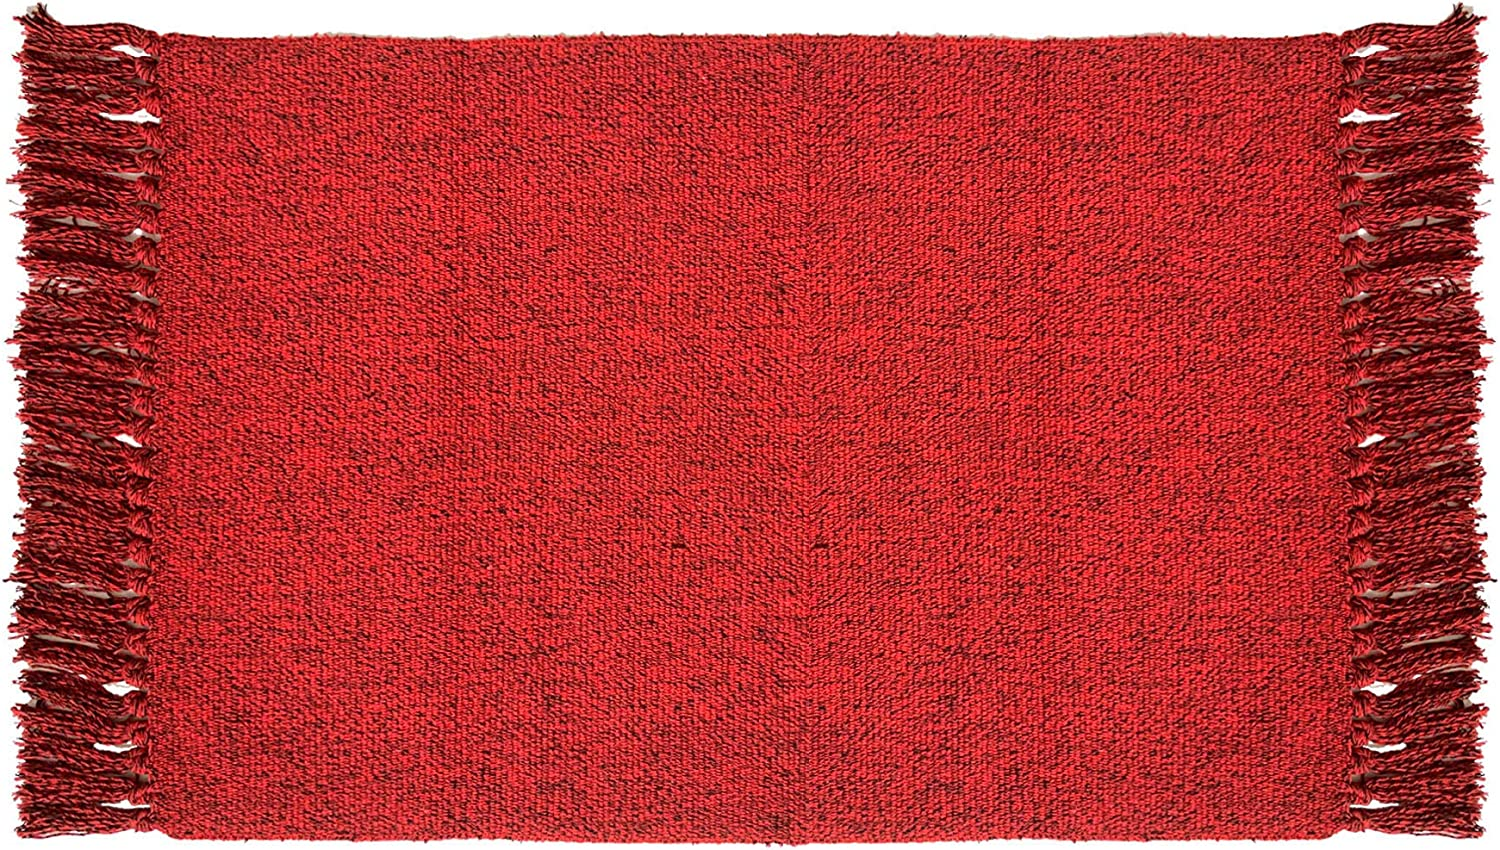 Ukeler Hand Woven Rug Breathable Cotton & Polyester Table Covers Sofa Decor Washable Decorative Area Rugs for Kitchen, Laundry,Living Room, Bedroom, Bathroom, Office (Black & Red, 23.6